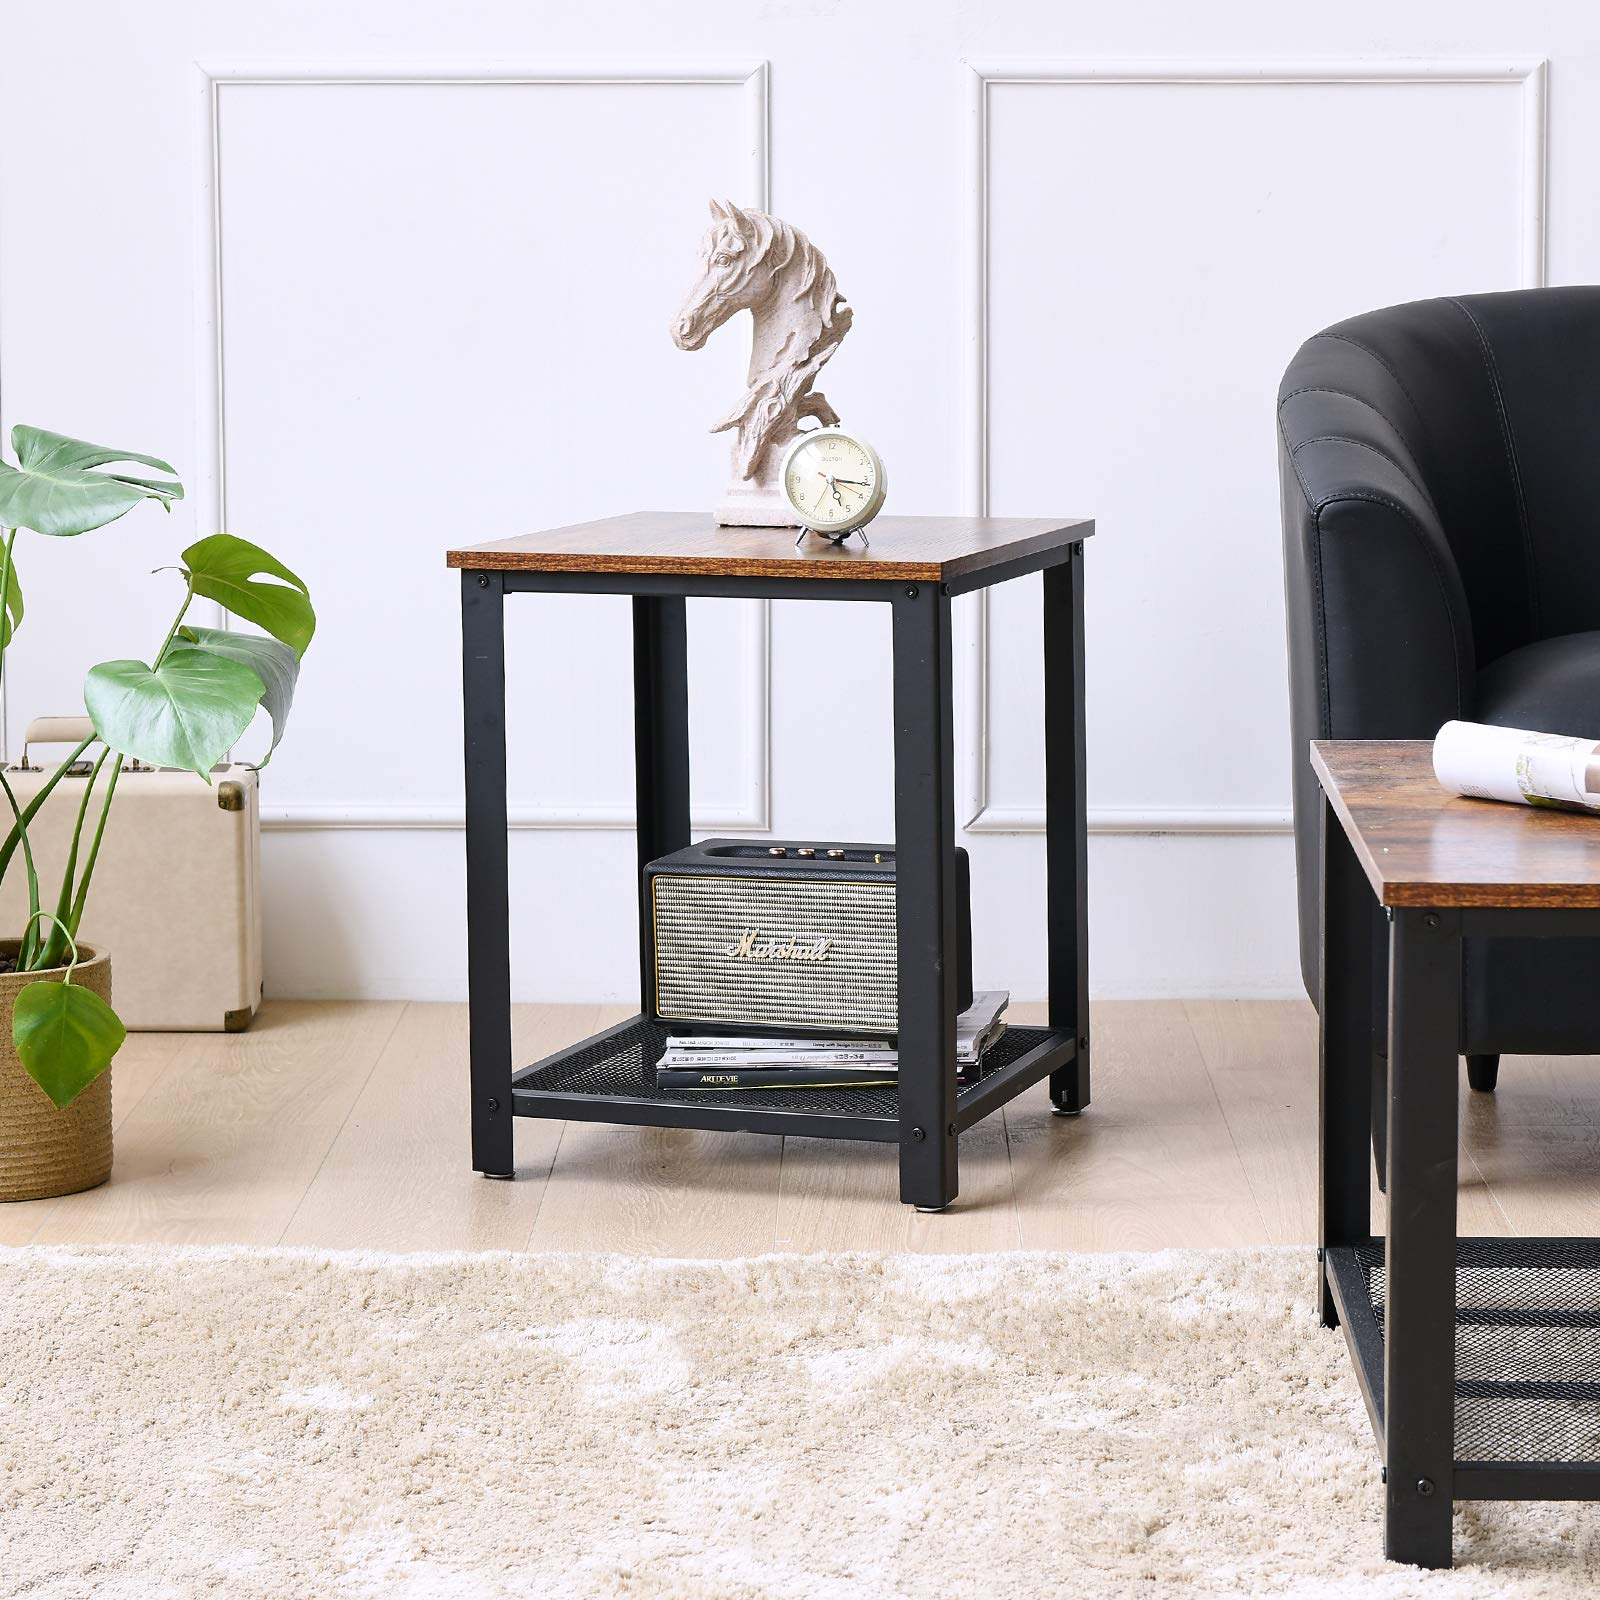 Living Room Rustic Brown End Telephone Table with 2-Tier Shelves YMYNY Sofa Side Table Nightstand for Bedroom UTMJ008H